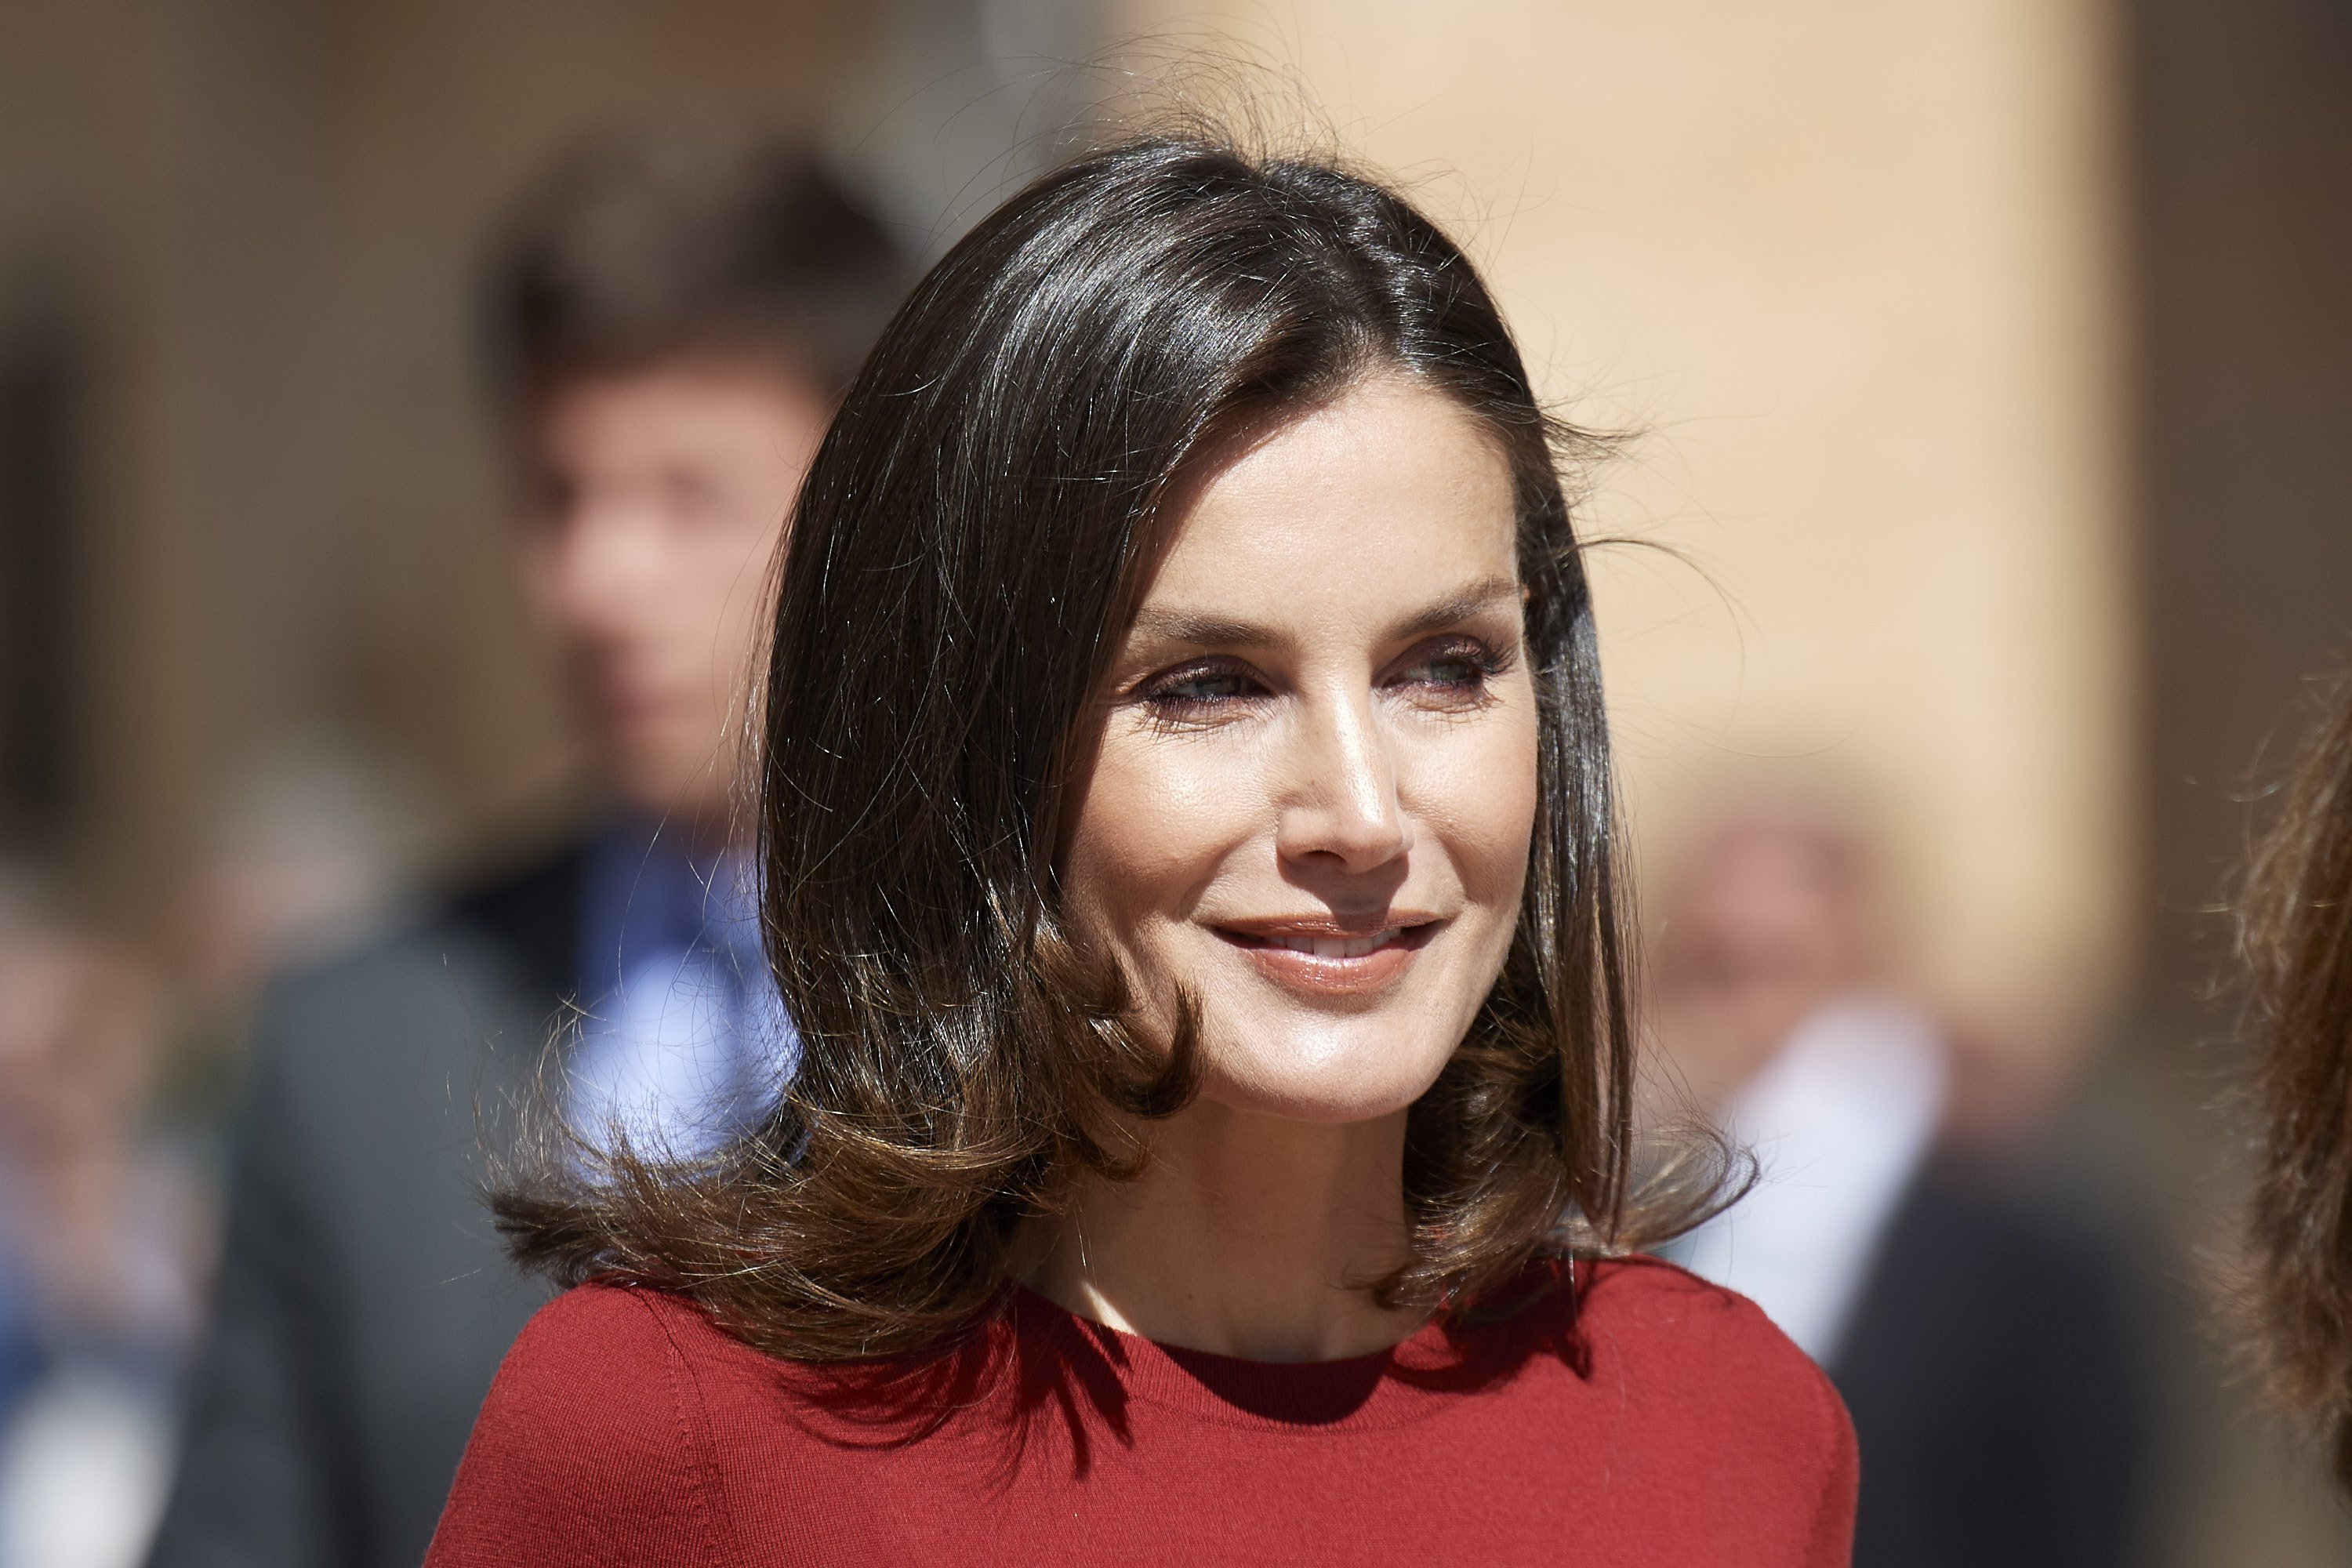 Queen Letizia Of Spain attends the closure Of Journalist's Seminar on June 12, 2019 | Photo: Getty Images